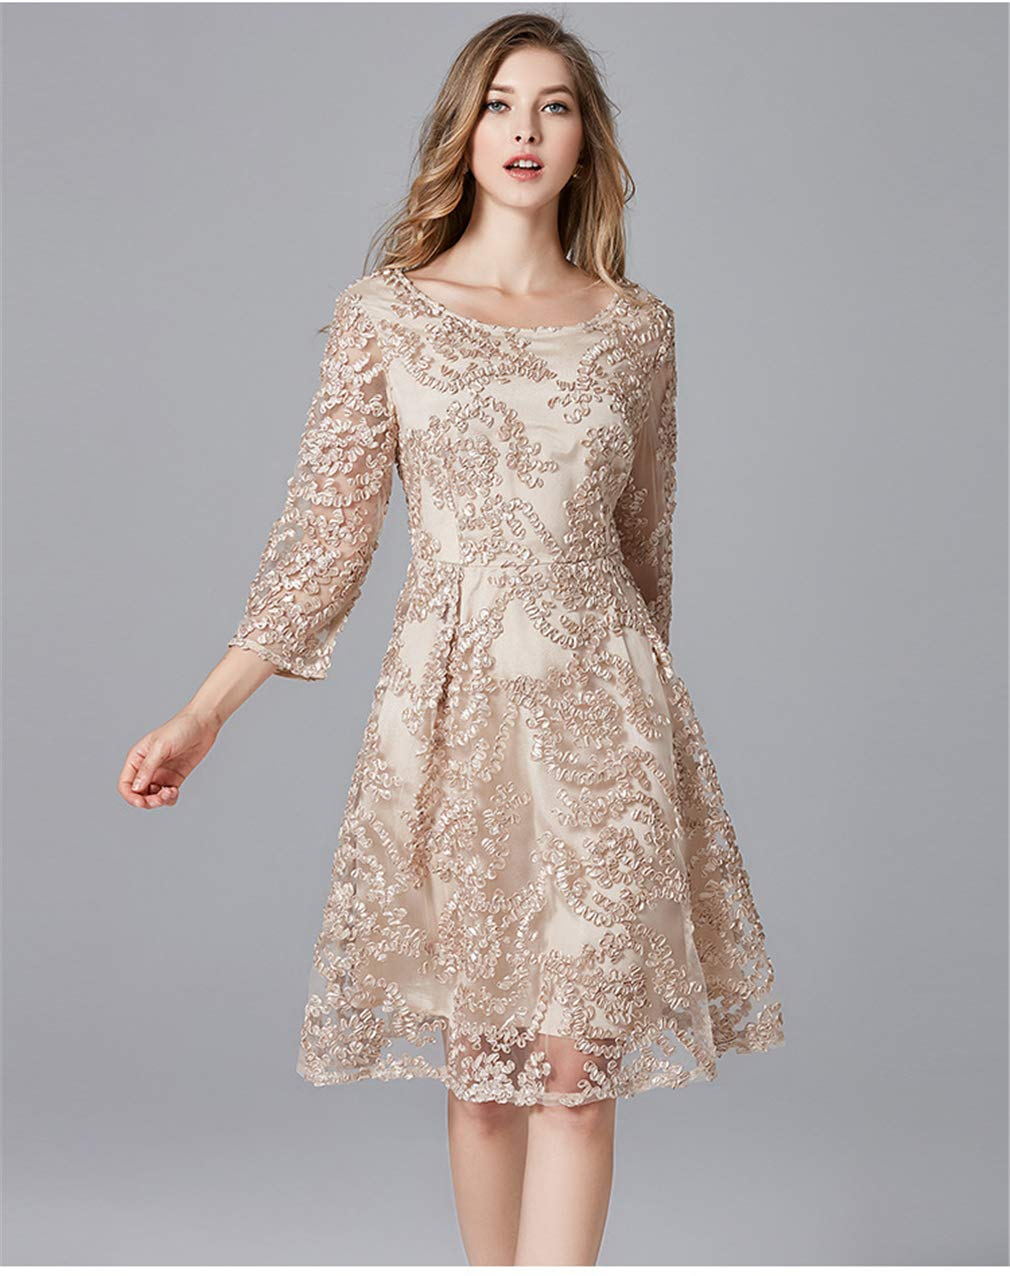 3XL Dress Plus Size Lace Mesh Embroidery Knee Length Cocktail Party Champagne Clothing (L5XL)